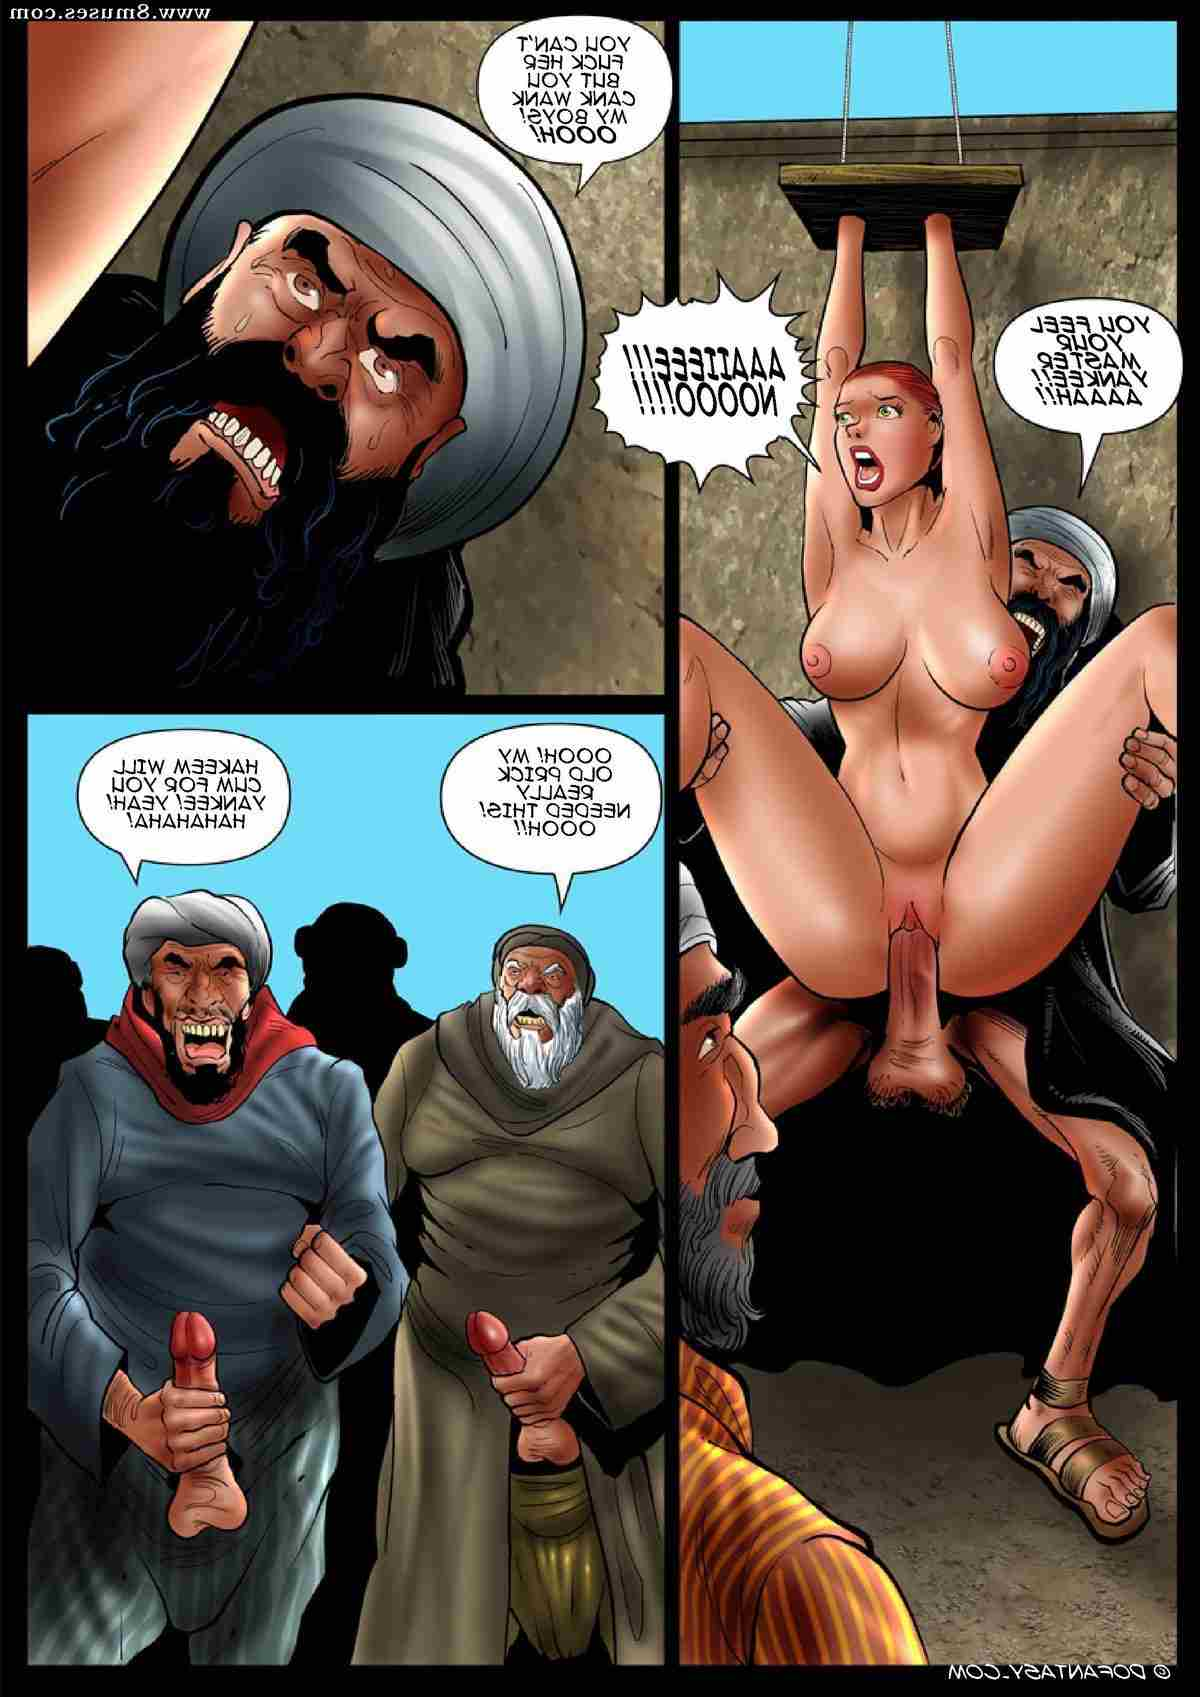 Fansadox-Comics/301-400/Fansadox-369-The-Pows Fansadox_369_-_The_Pows__8muses_-_Sex_and_Porn_Comics_17.jpg